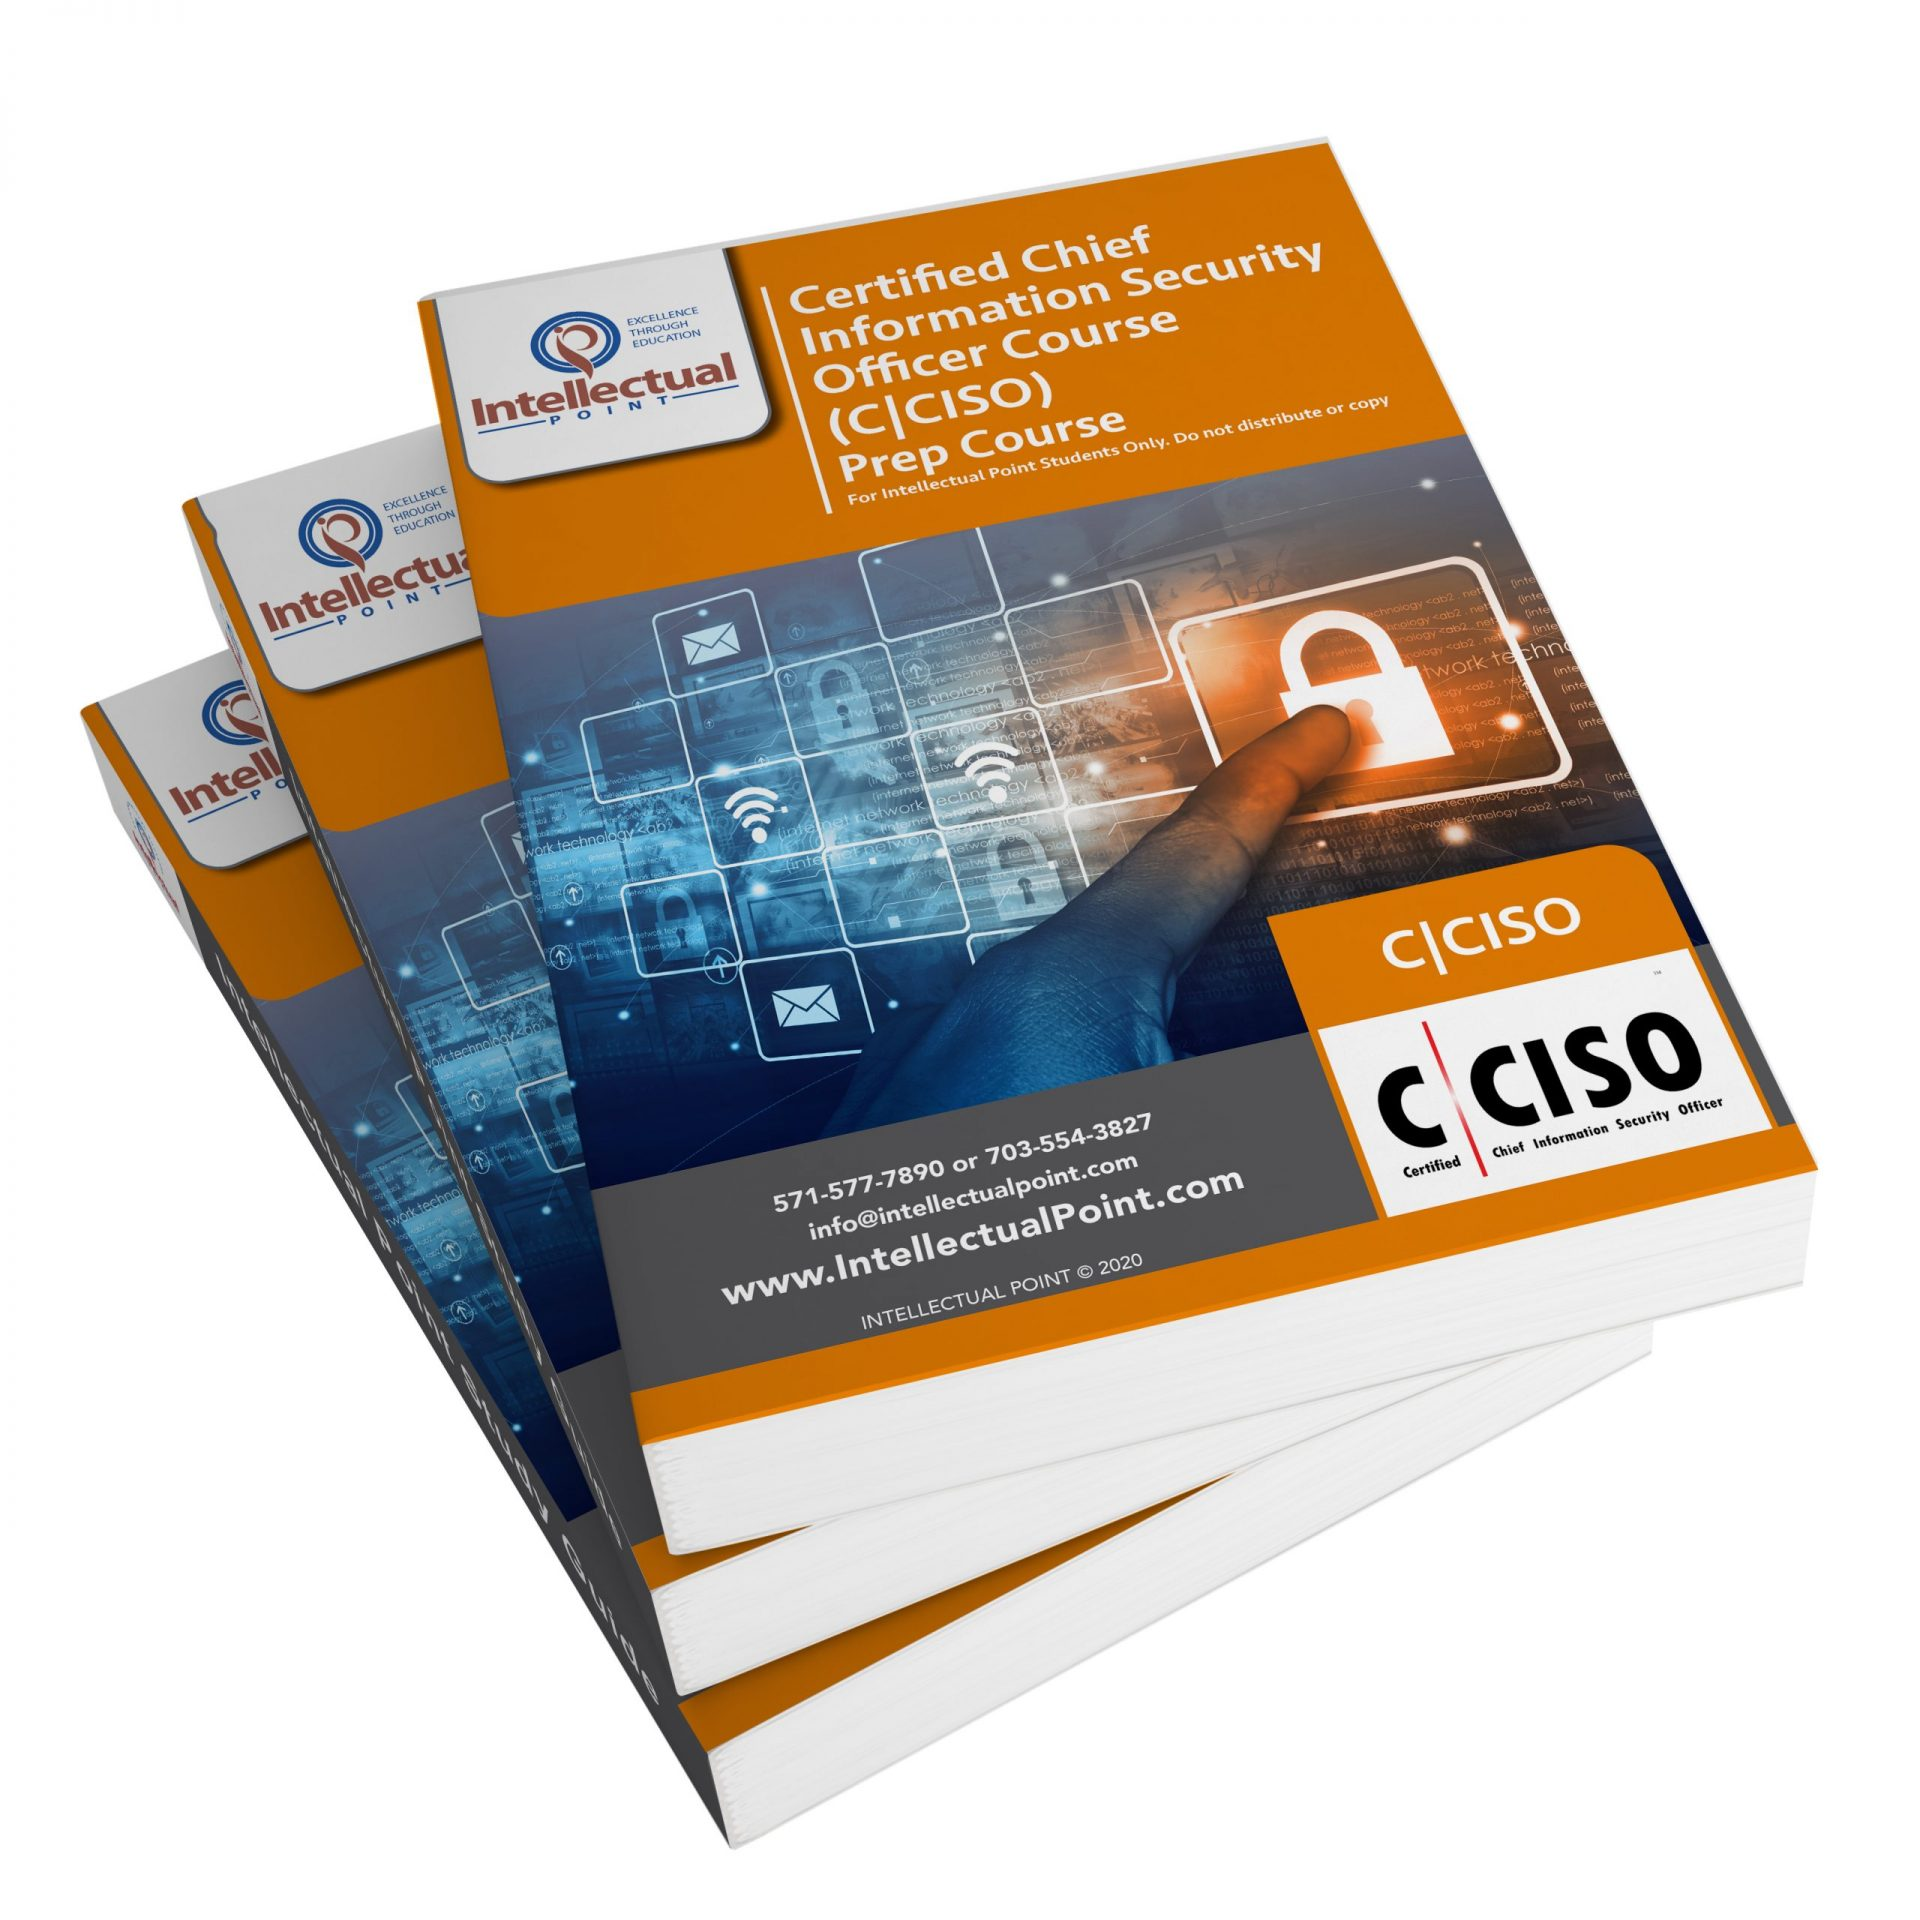 Certified Chief Information Security Officer Course (CCISO) Study Guide